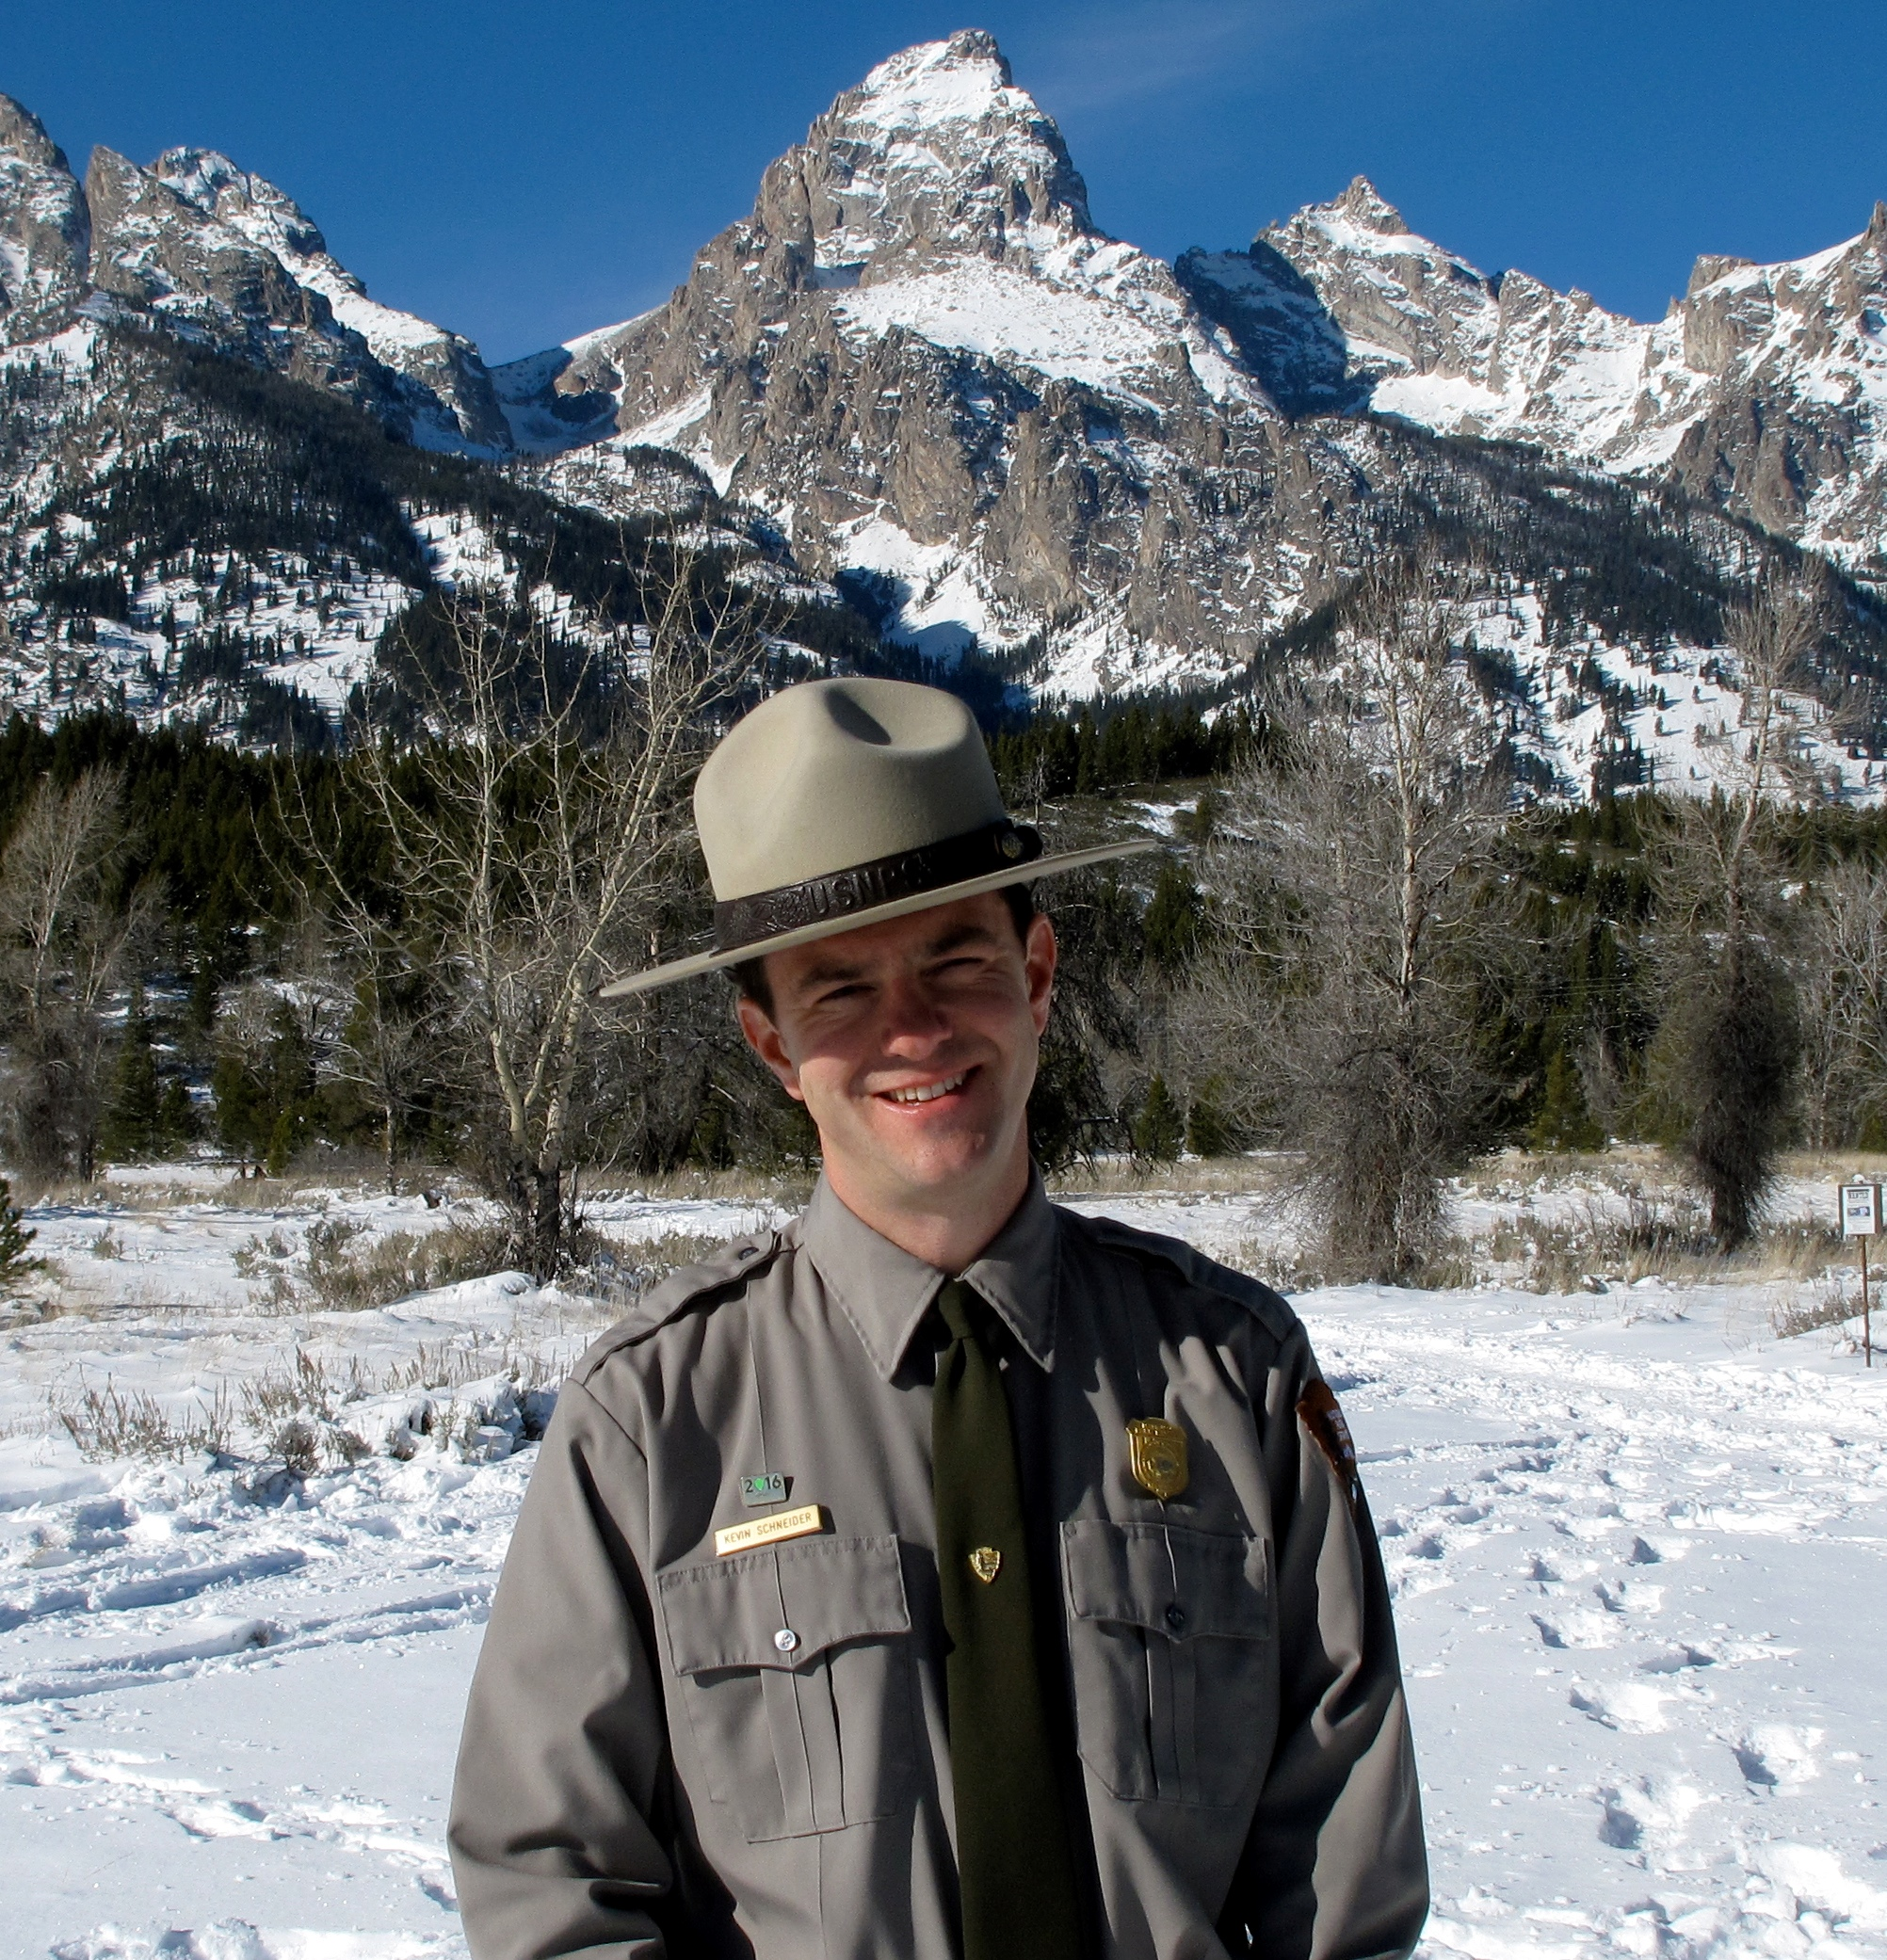 A man wearing a ranger uniform standing in front of snow covered rocky mountain peaks.